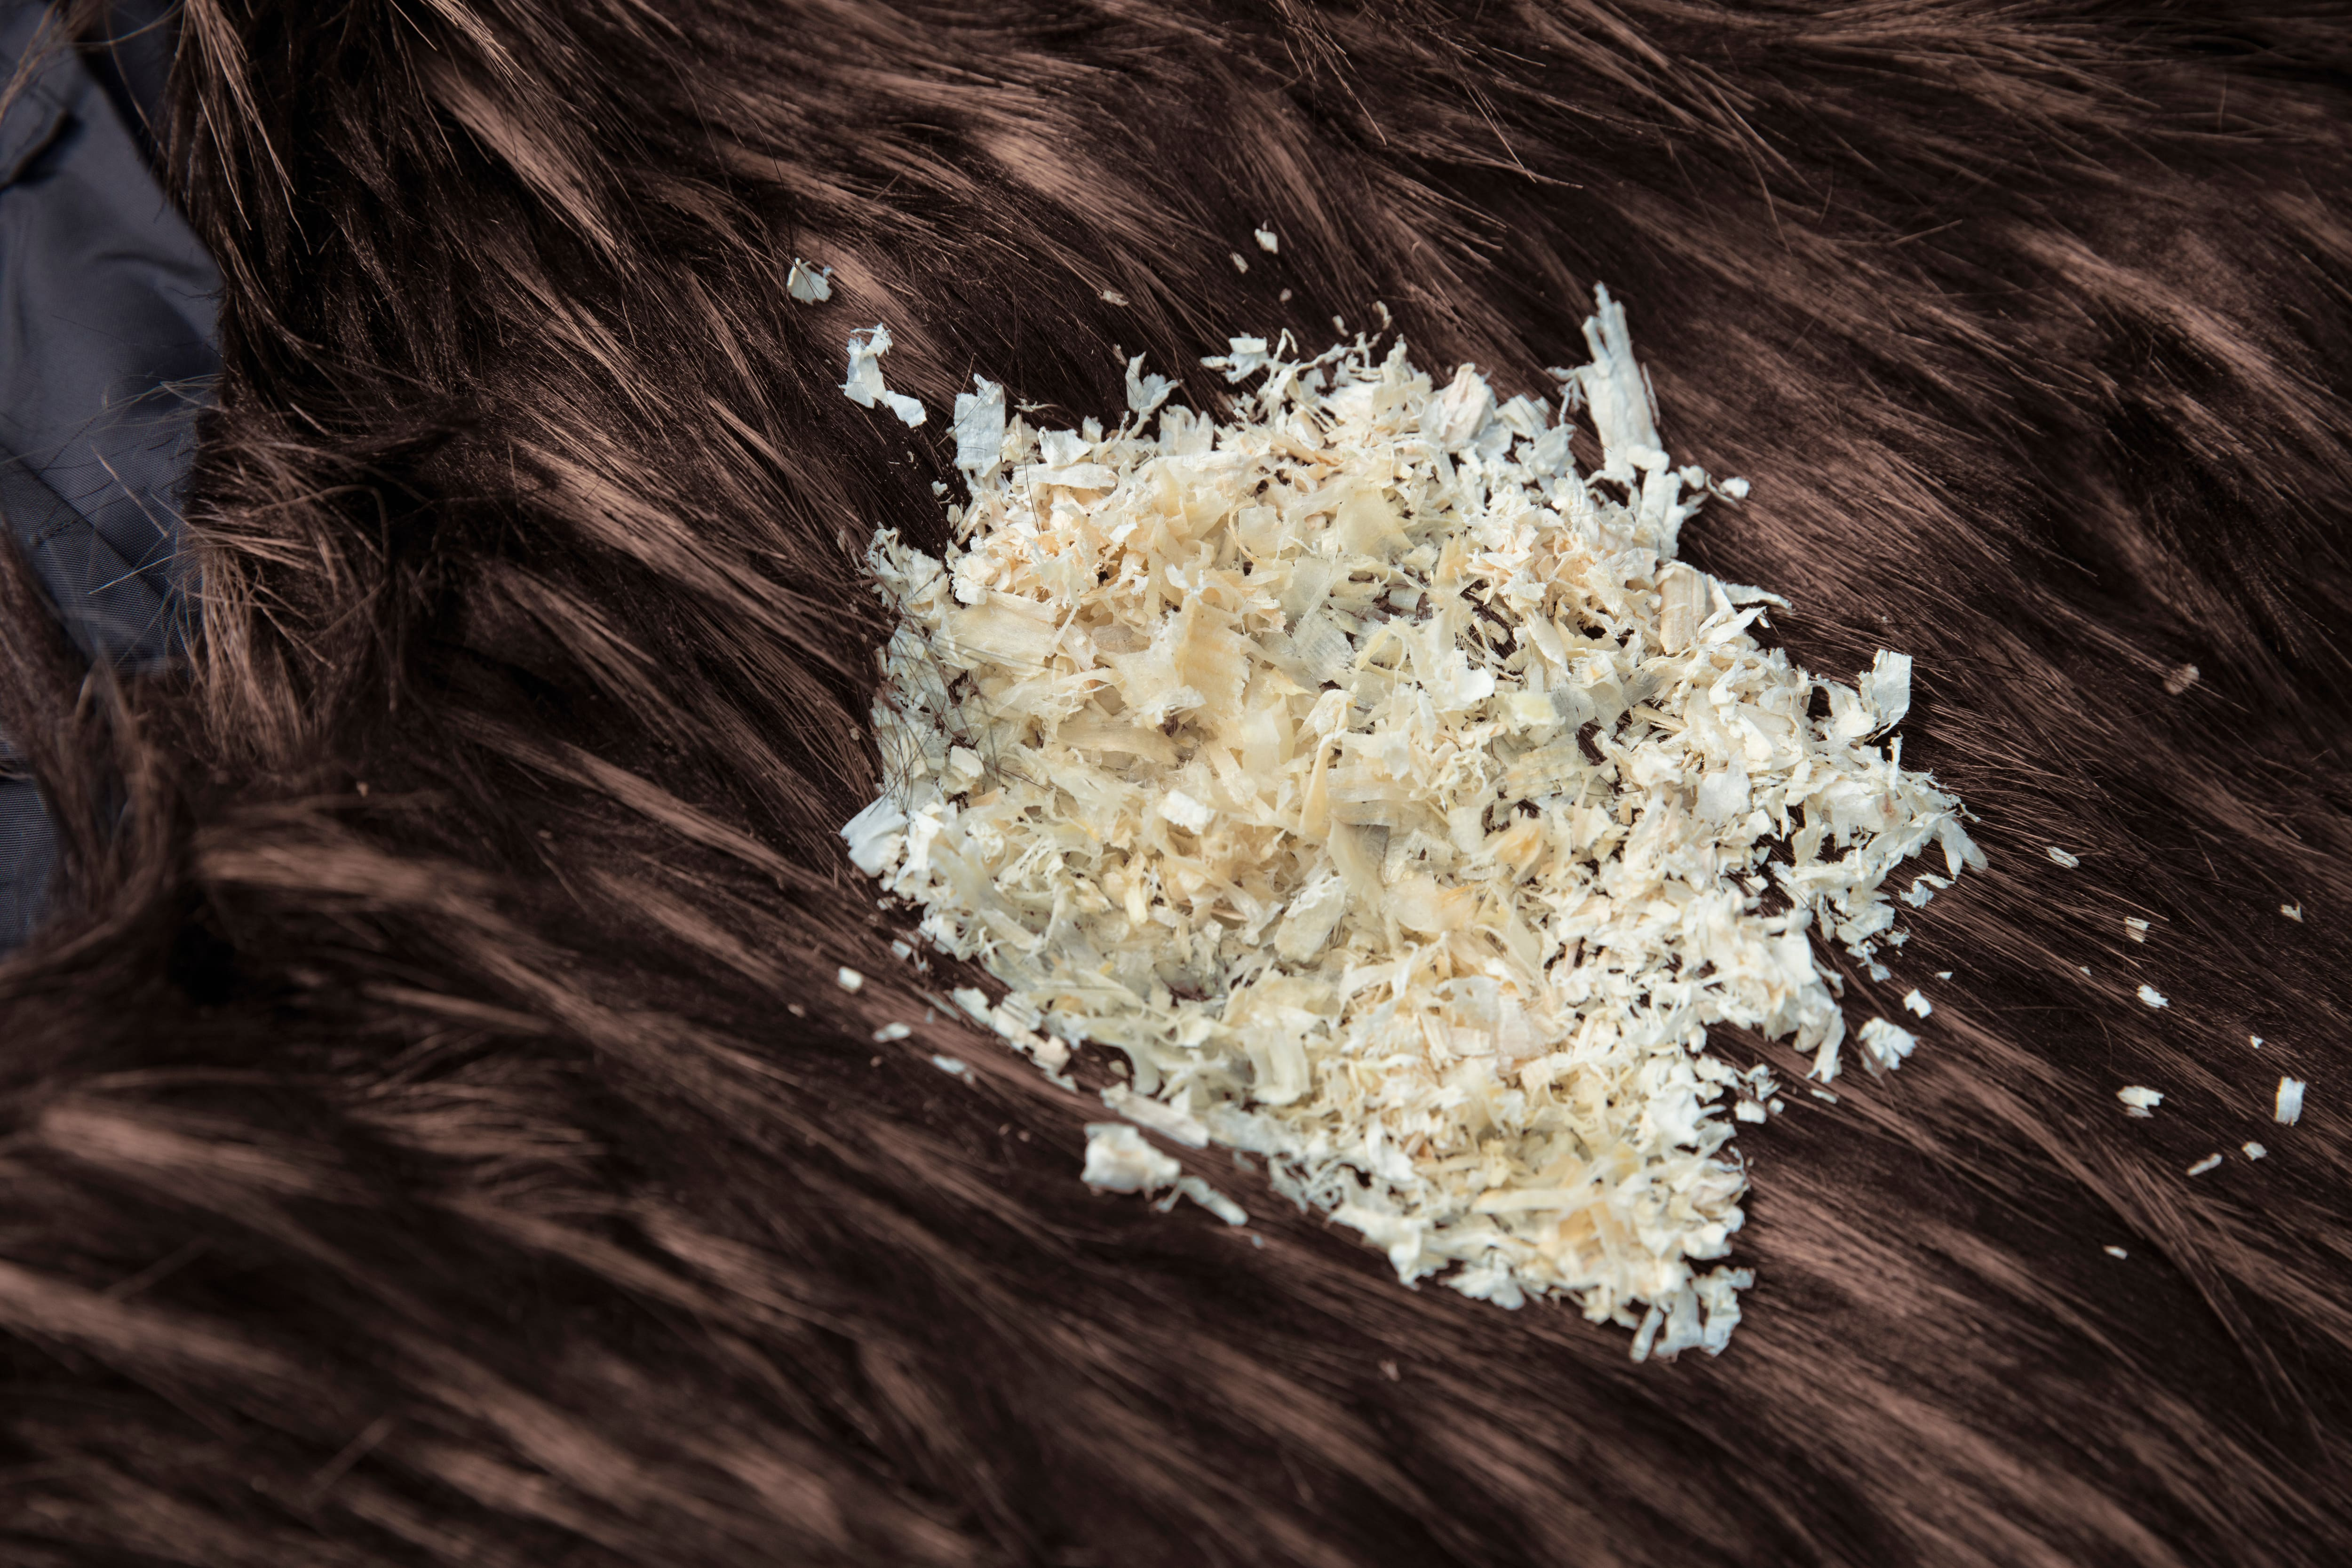 How to clean fur at home effectively